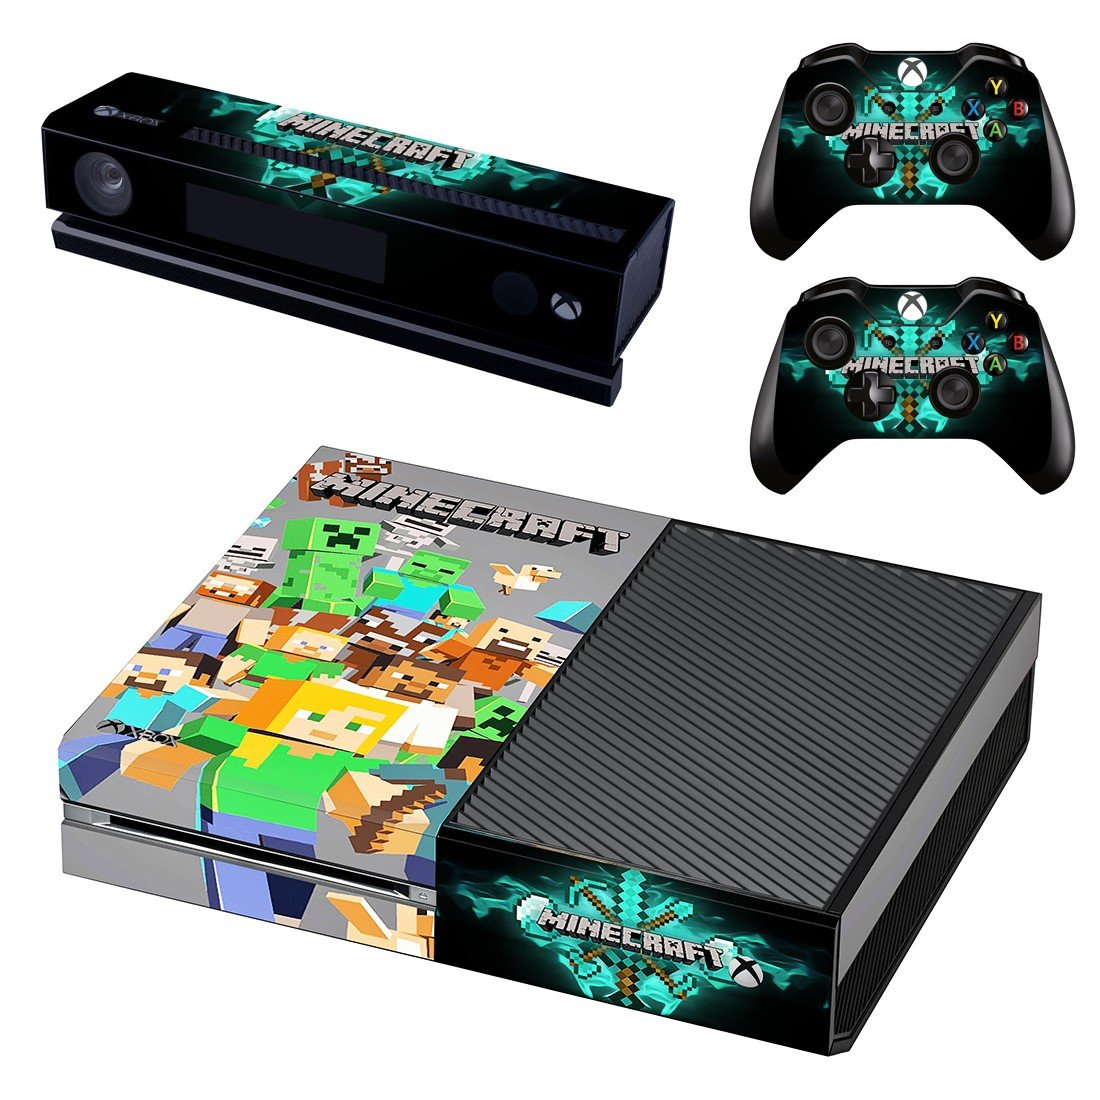 Minecraft decal skin sticker for Xbox One console and controllers